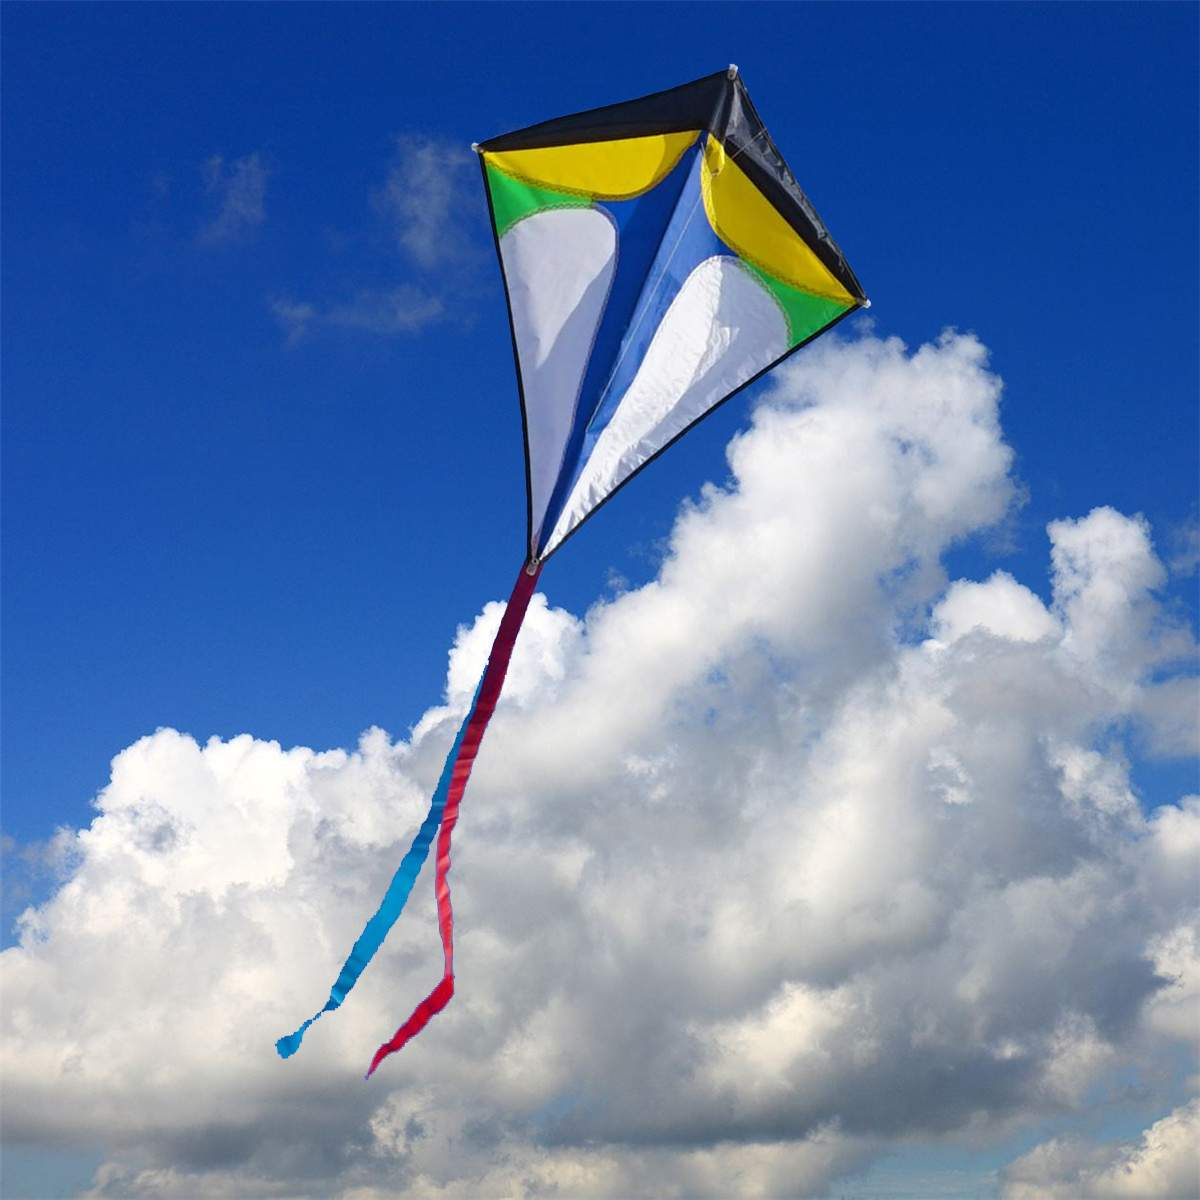 Diamond Flying Kite Tail Outdoor Sports Toys Kid Fun Game Activity Kids Learning Toy 78CM